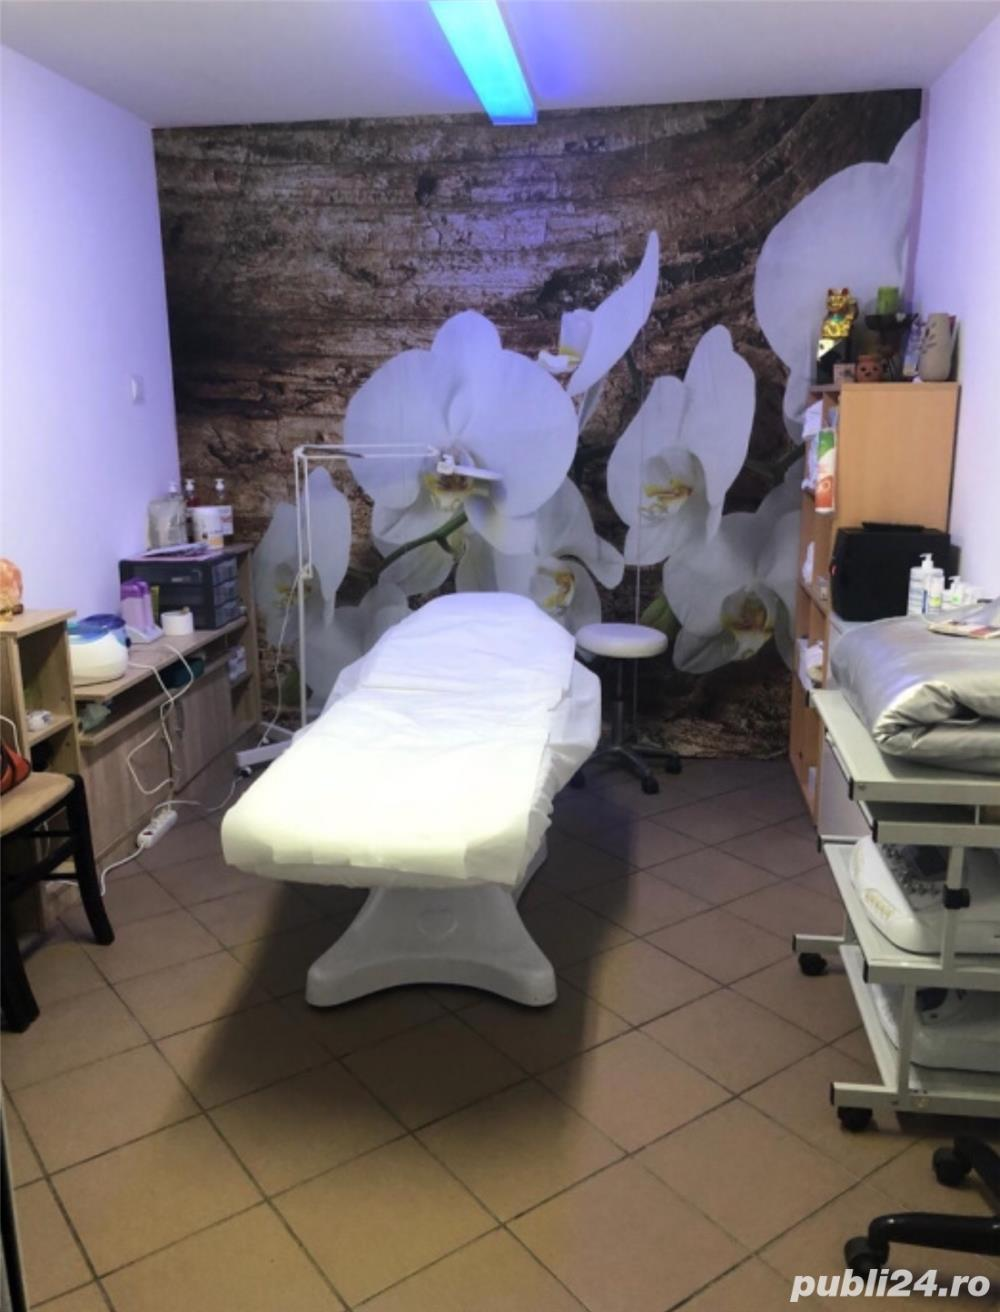 Subanchiriez salon infrumusetare 700 €